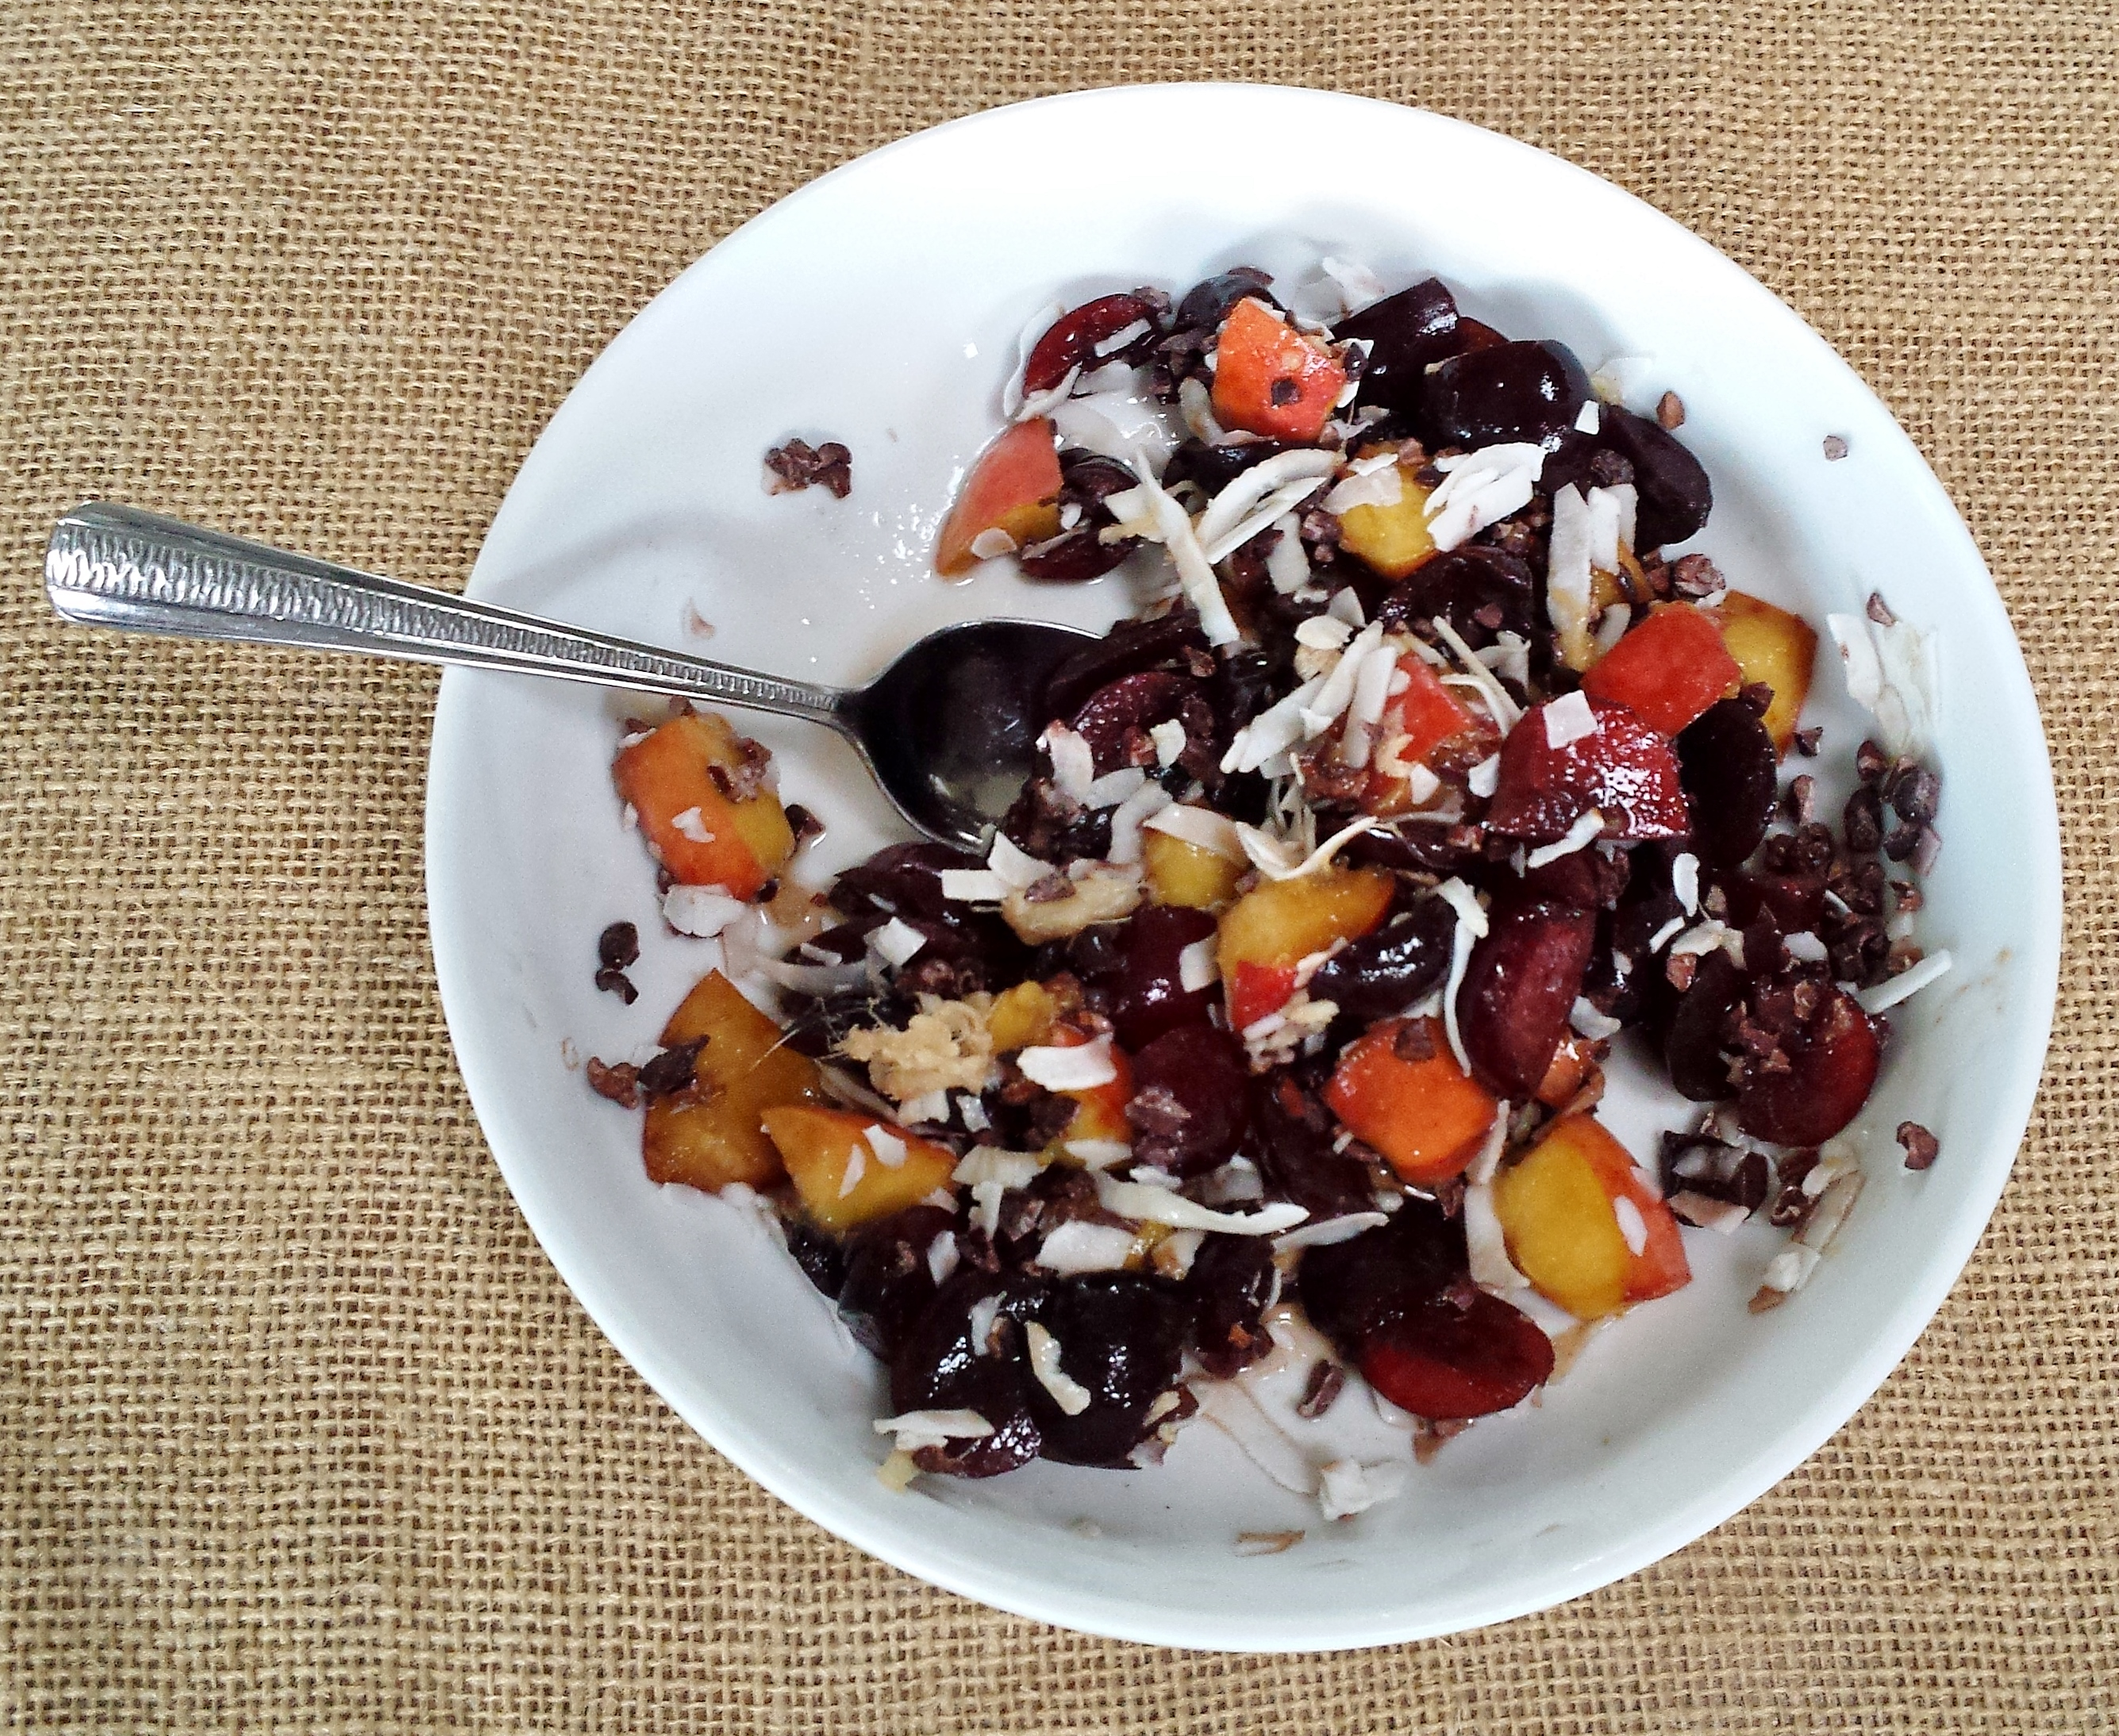 Super-Easy, Totally Un-Blah Fruit Salad #5: Cherries, Peaches, Cacao Nibs, and Ginger